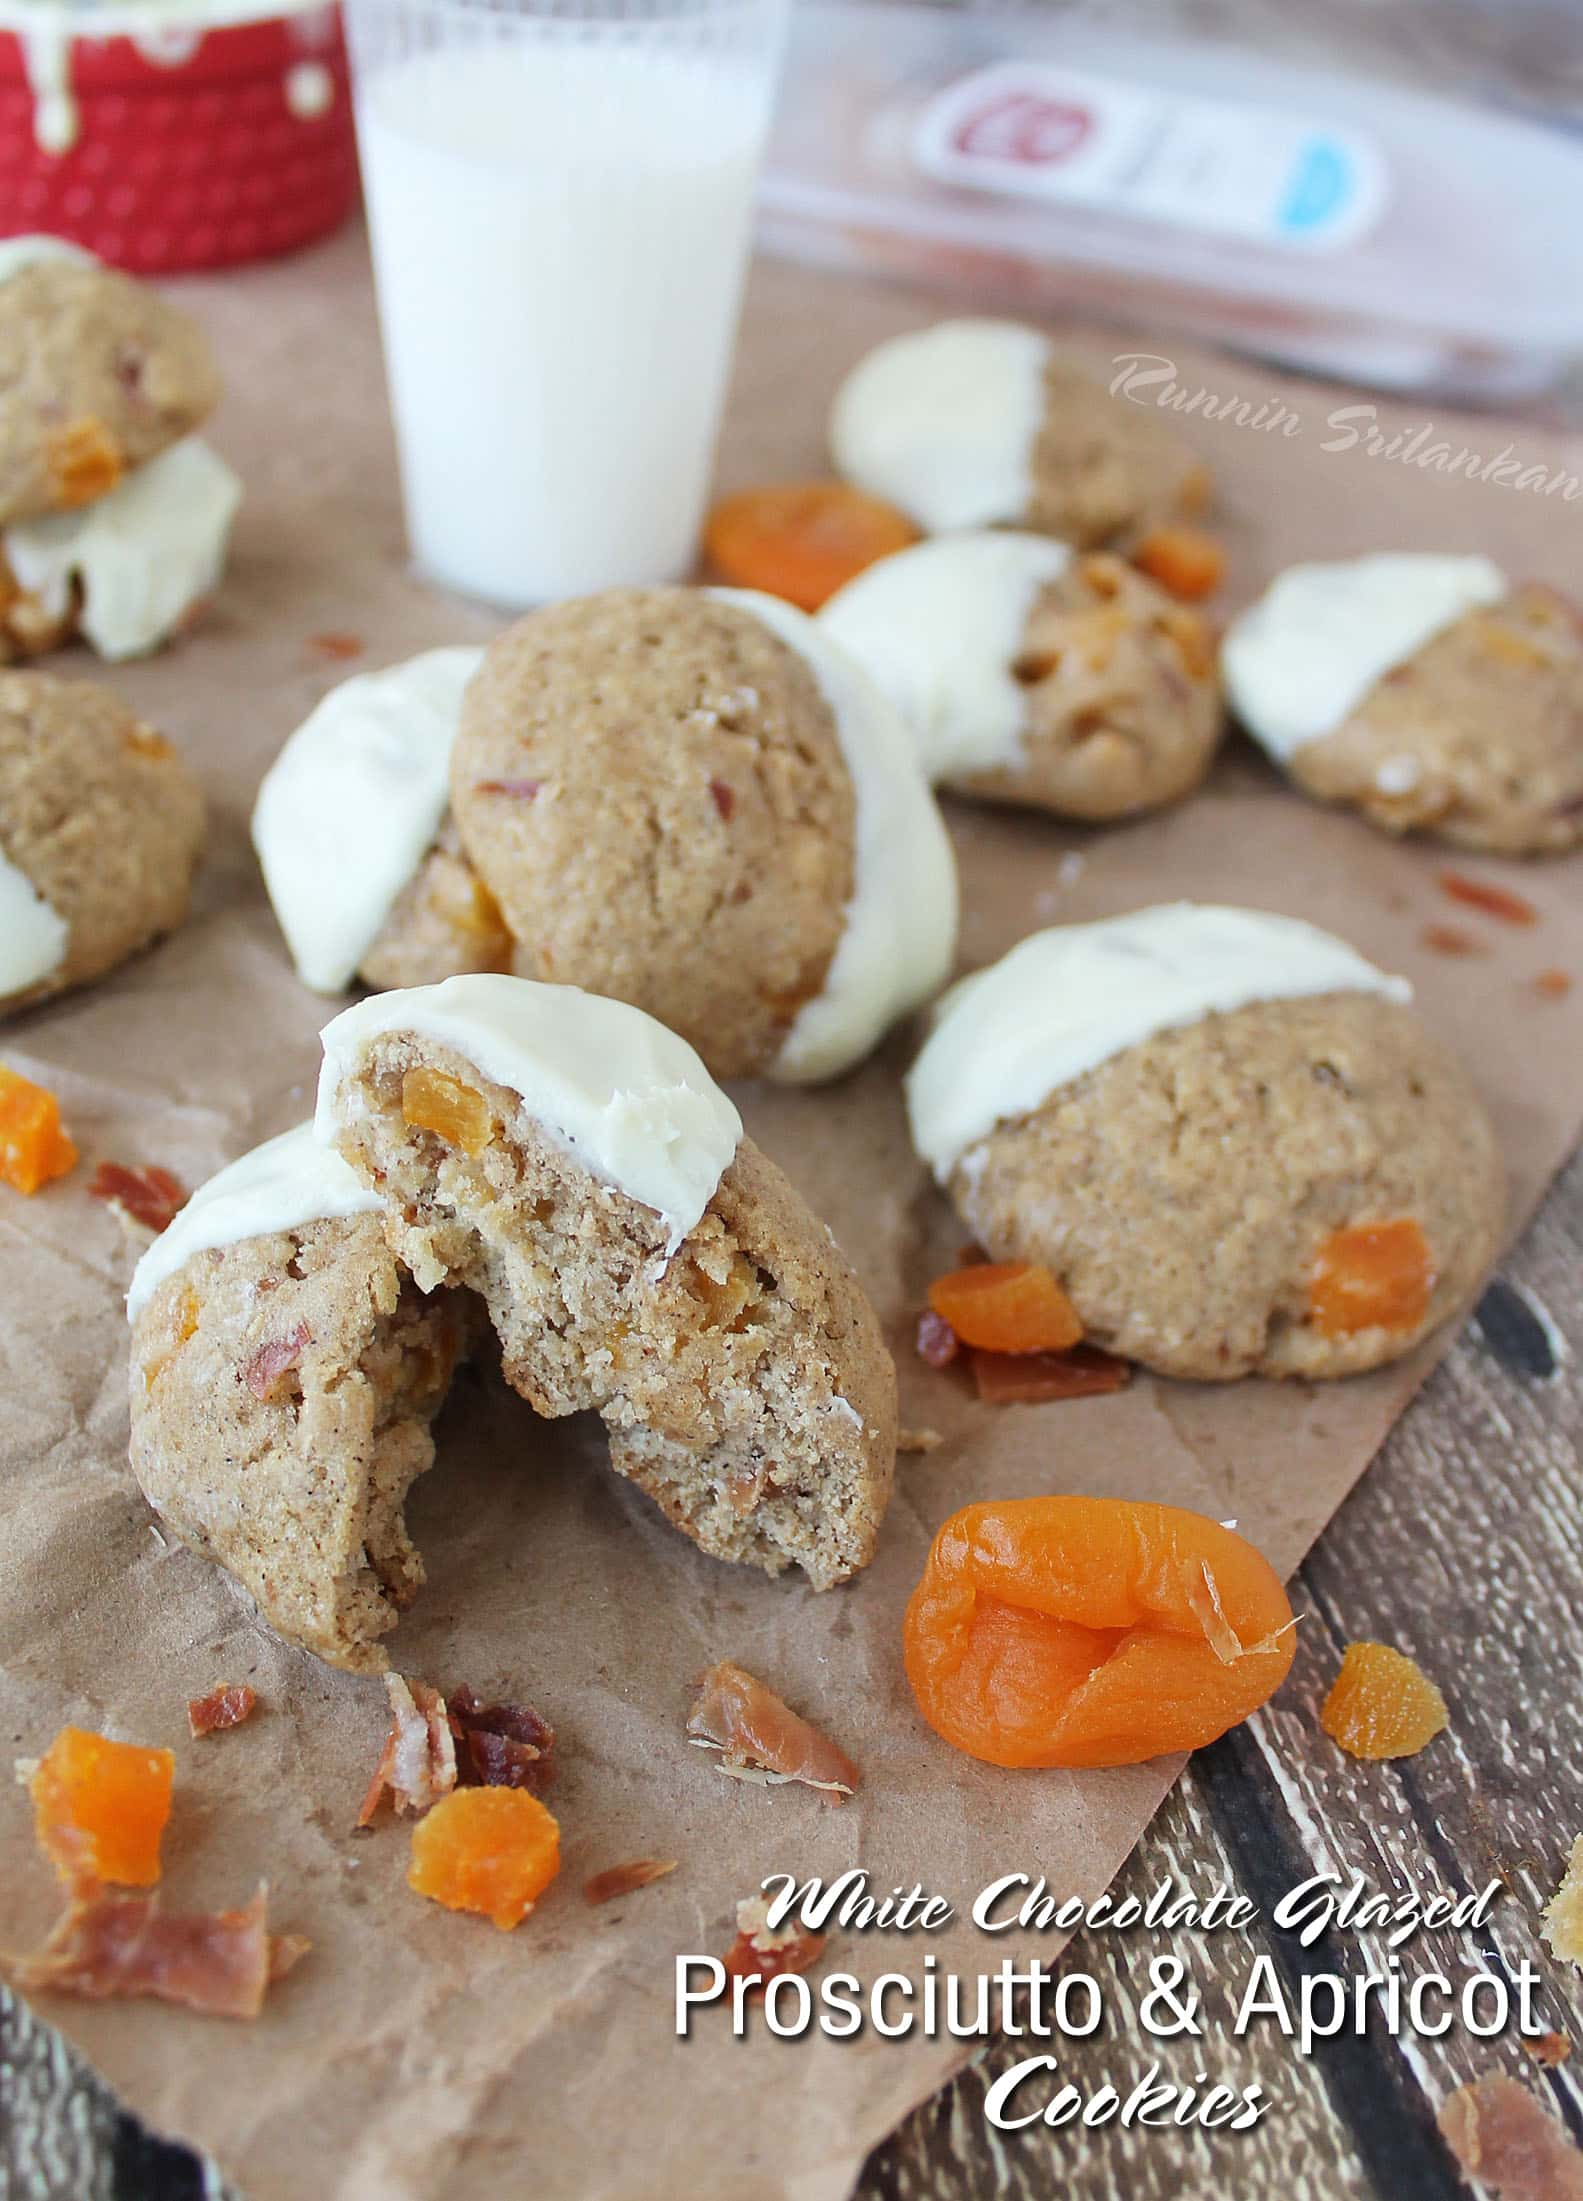 White Chocolate Glazed Prosciutto & Apricot Cookies #PairsWellWithHolidays